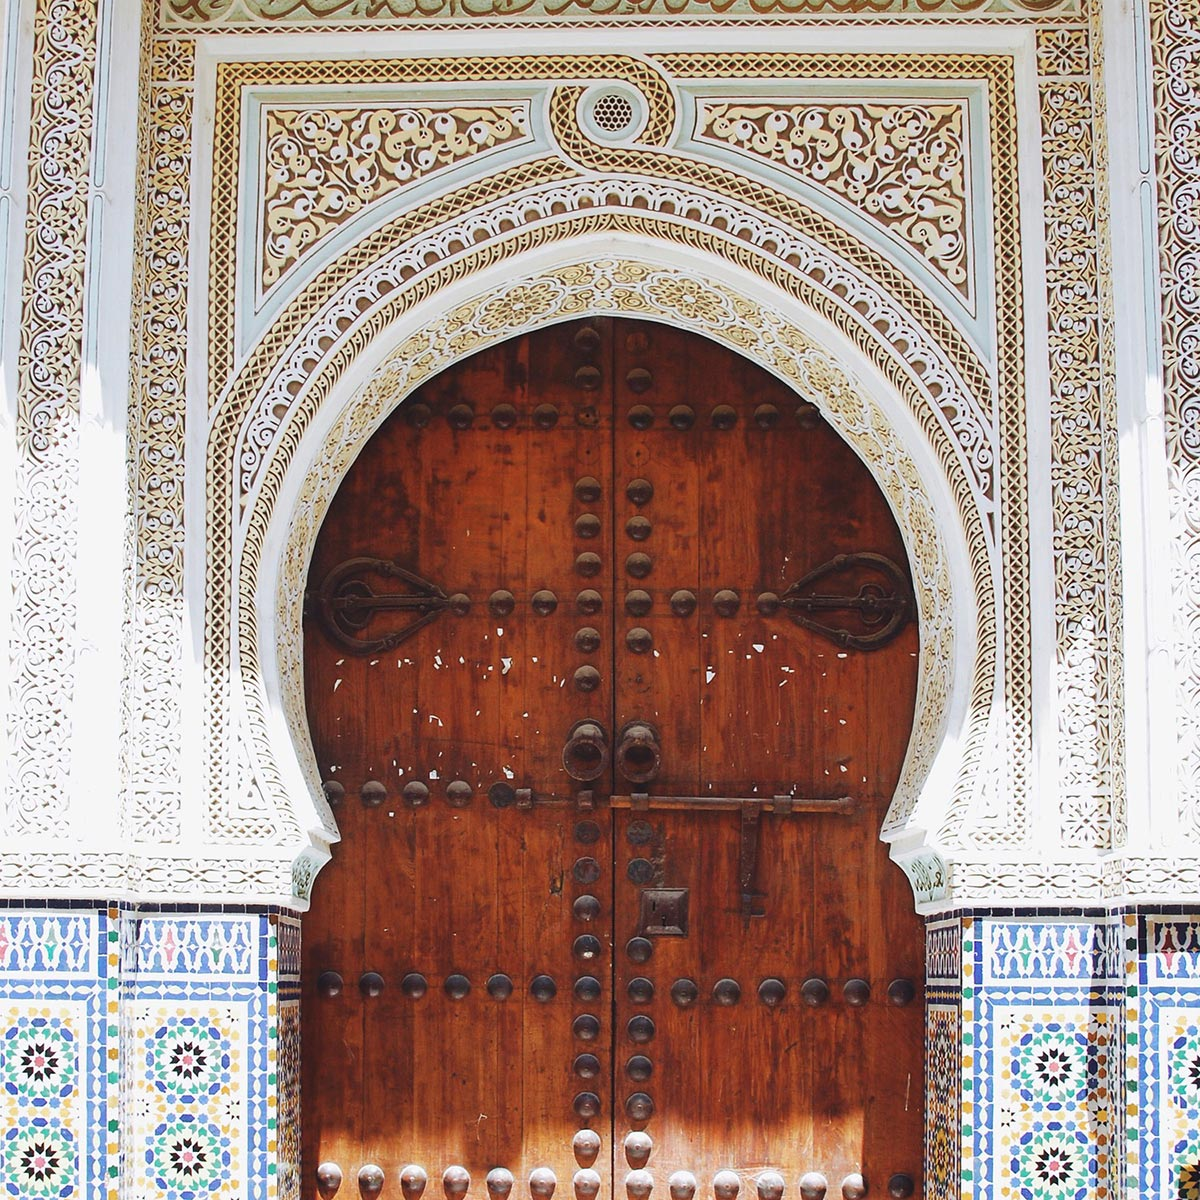 Beautiful doorway of an exquisite Morroccan architecture